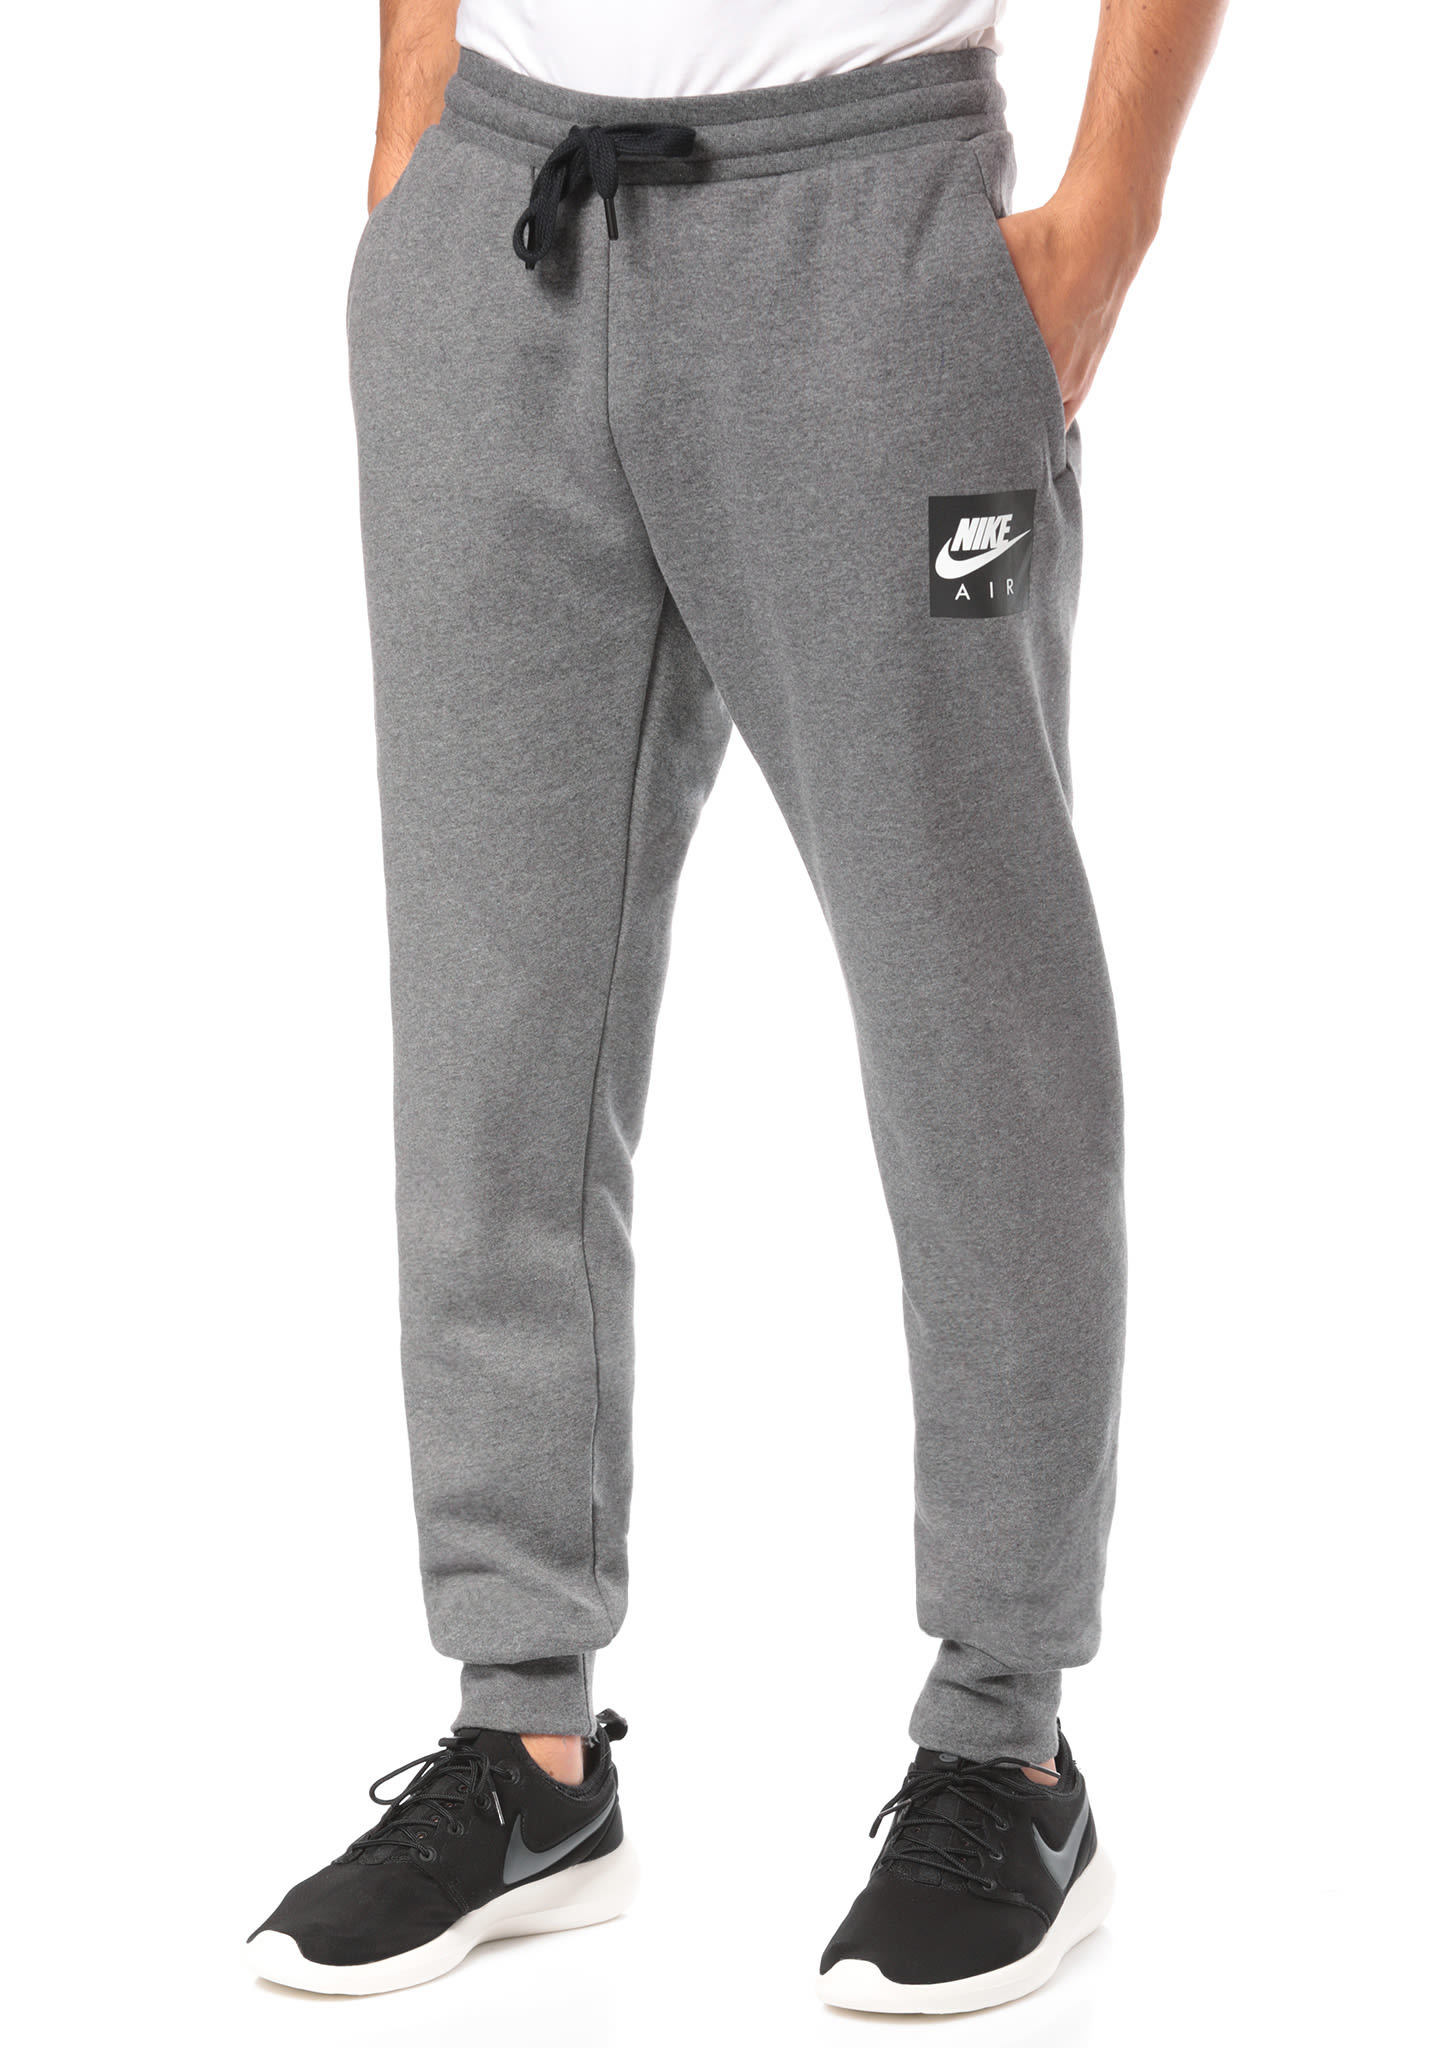 ca3113f583 NIKE SPORTSWEAR Air - Trackpants for Men - Grey - Planet Sports